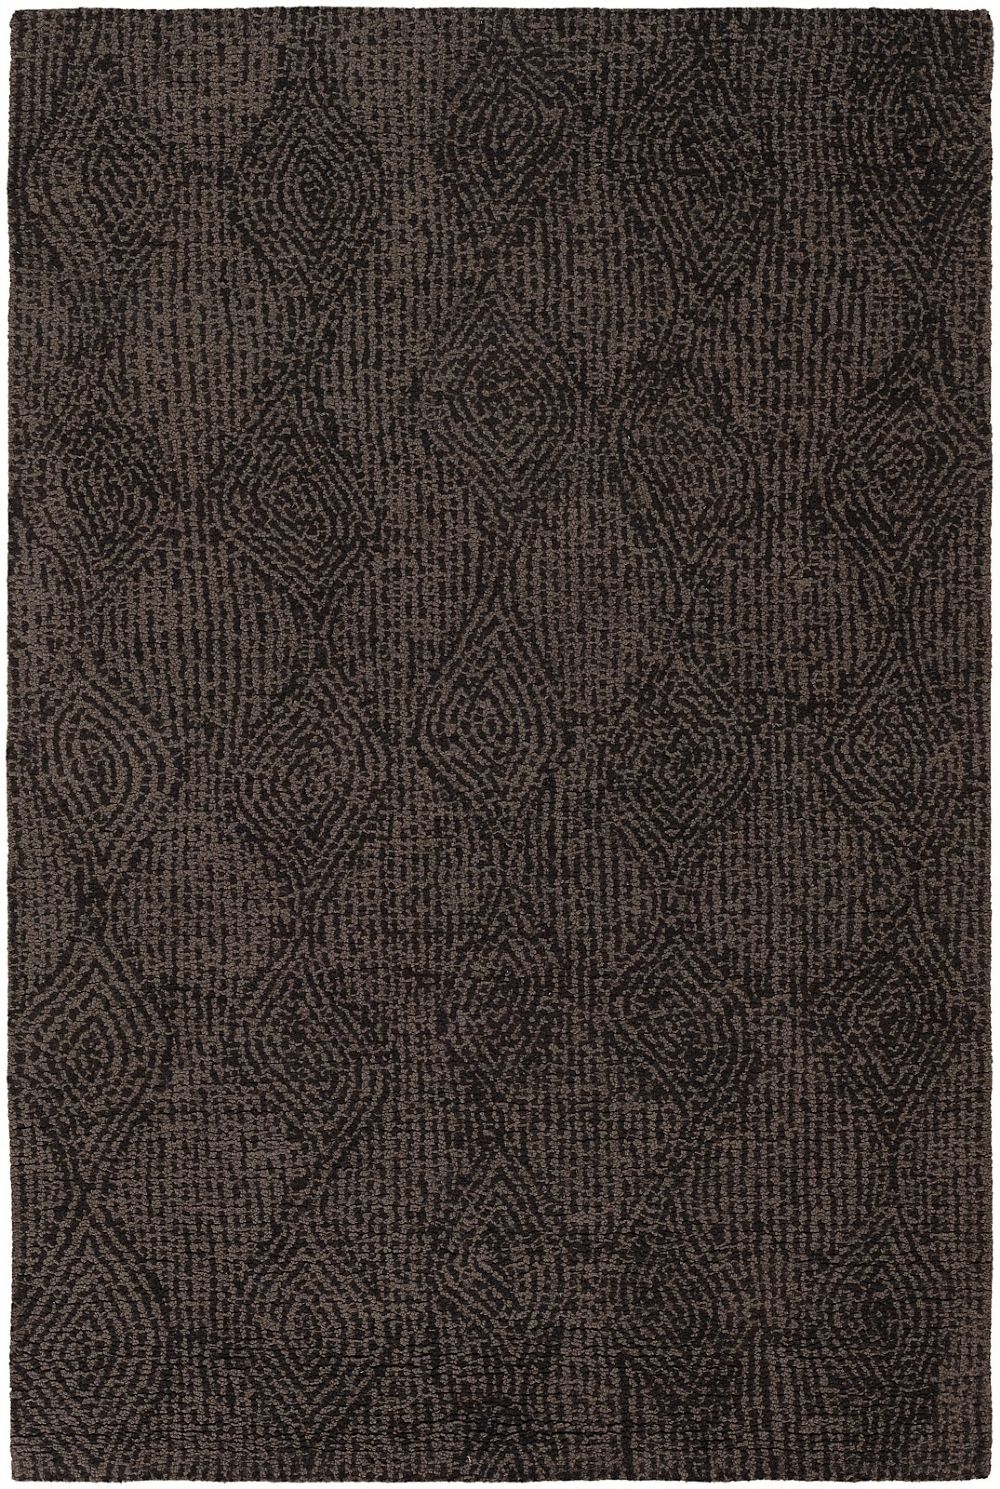 chandra navyan contemporary area rug collection